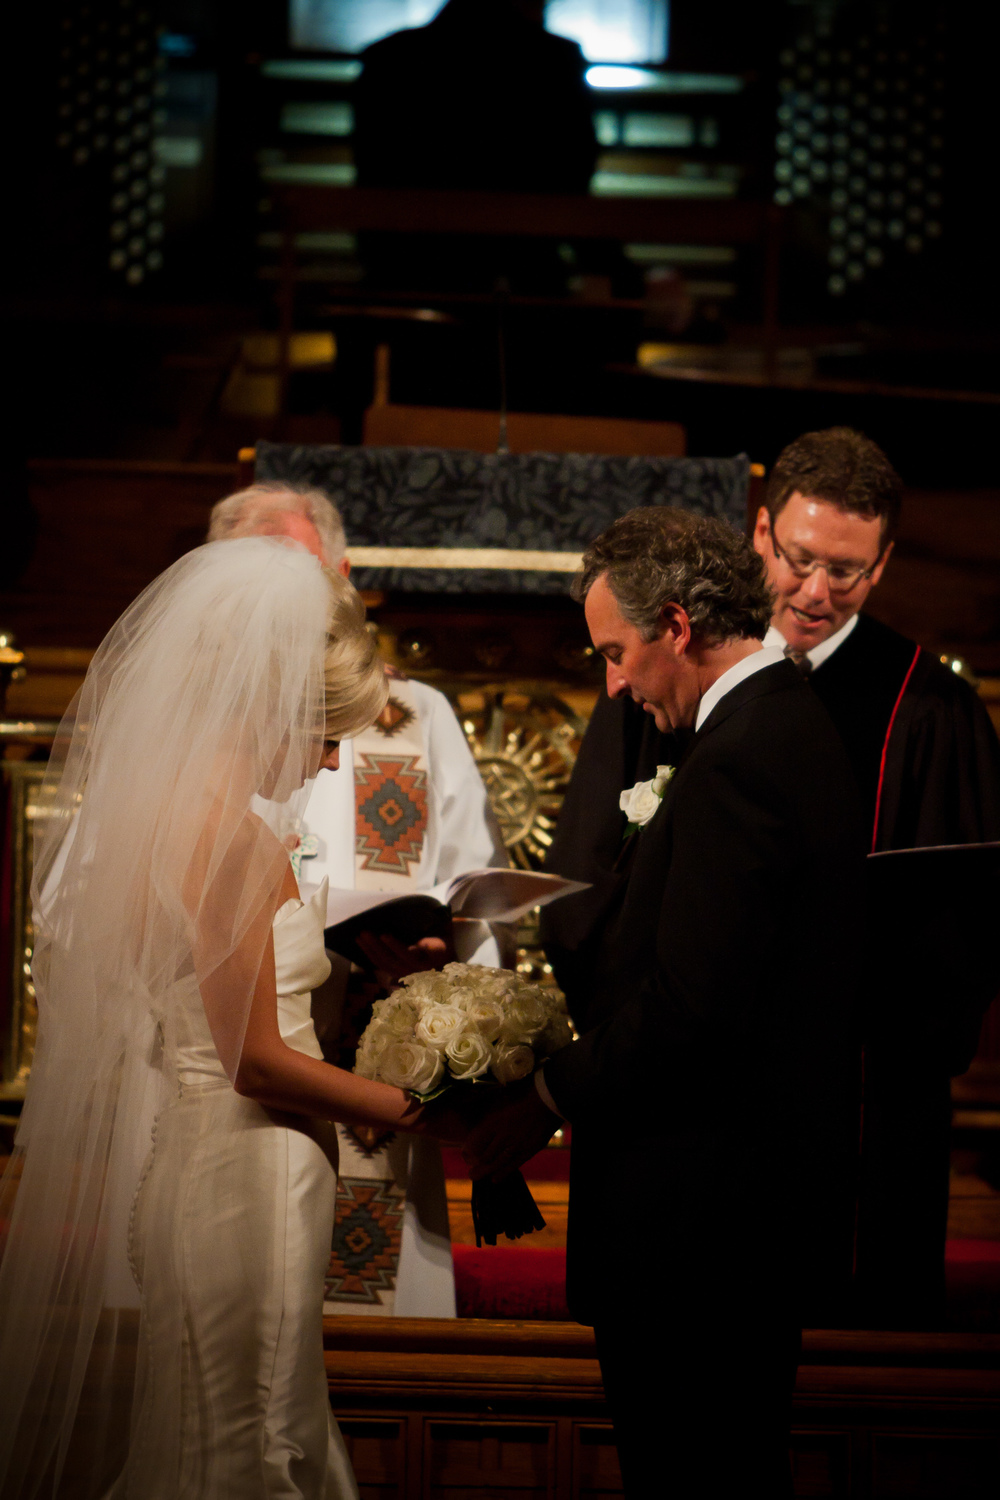 Four_Seasons_Denver_Wedding_049.JPG